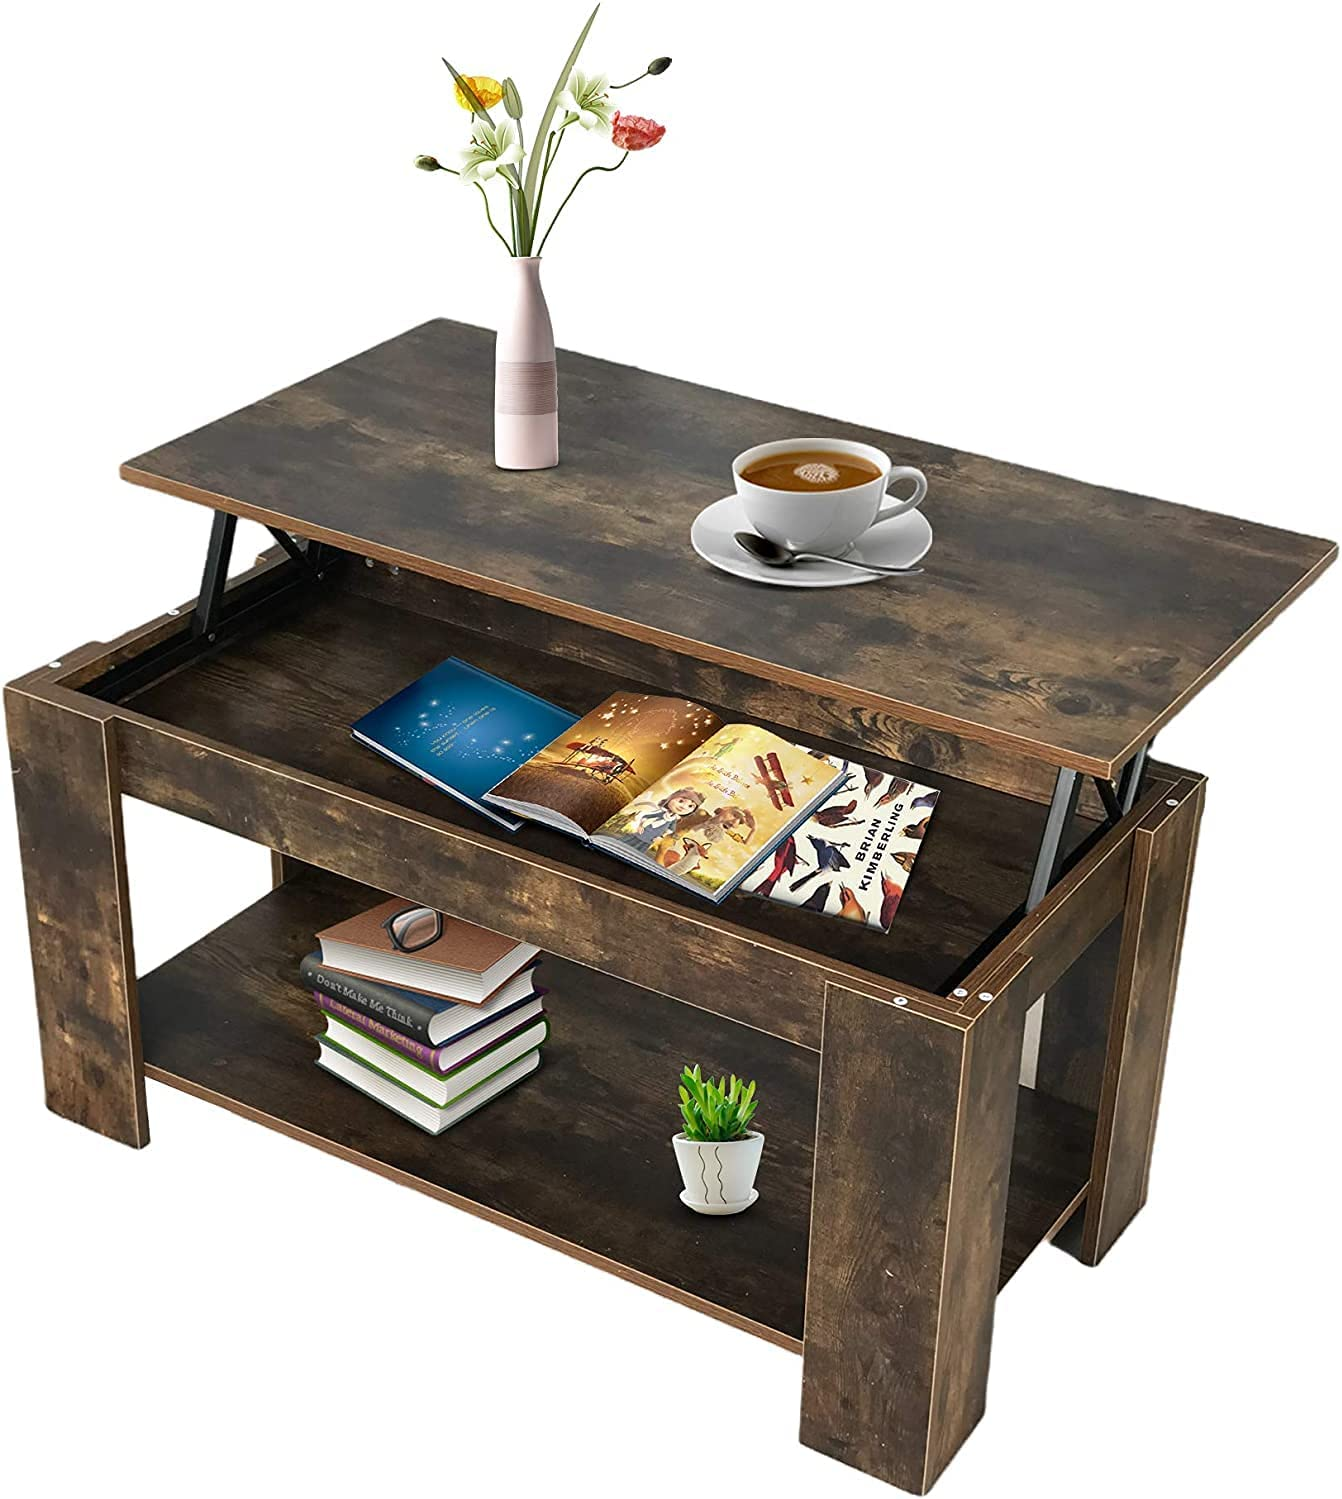 Comfortable Home Special sale item Lift Top Coffee with Table New Free Shipping a Compartment Hidden